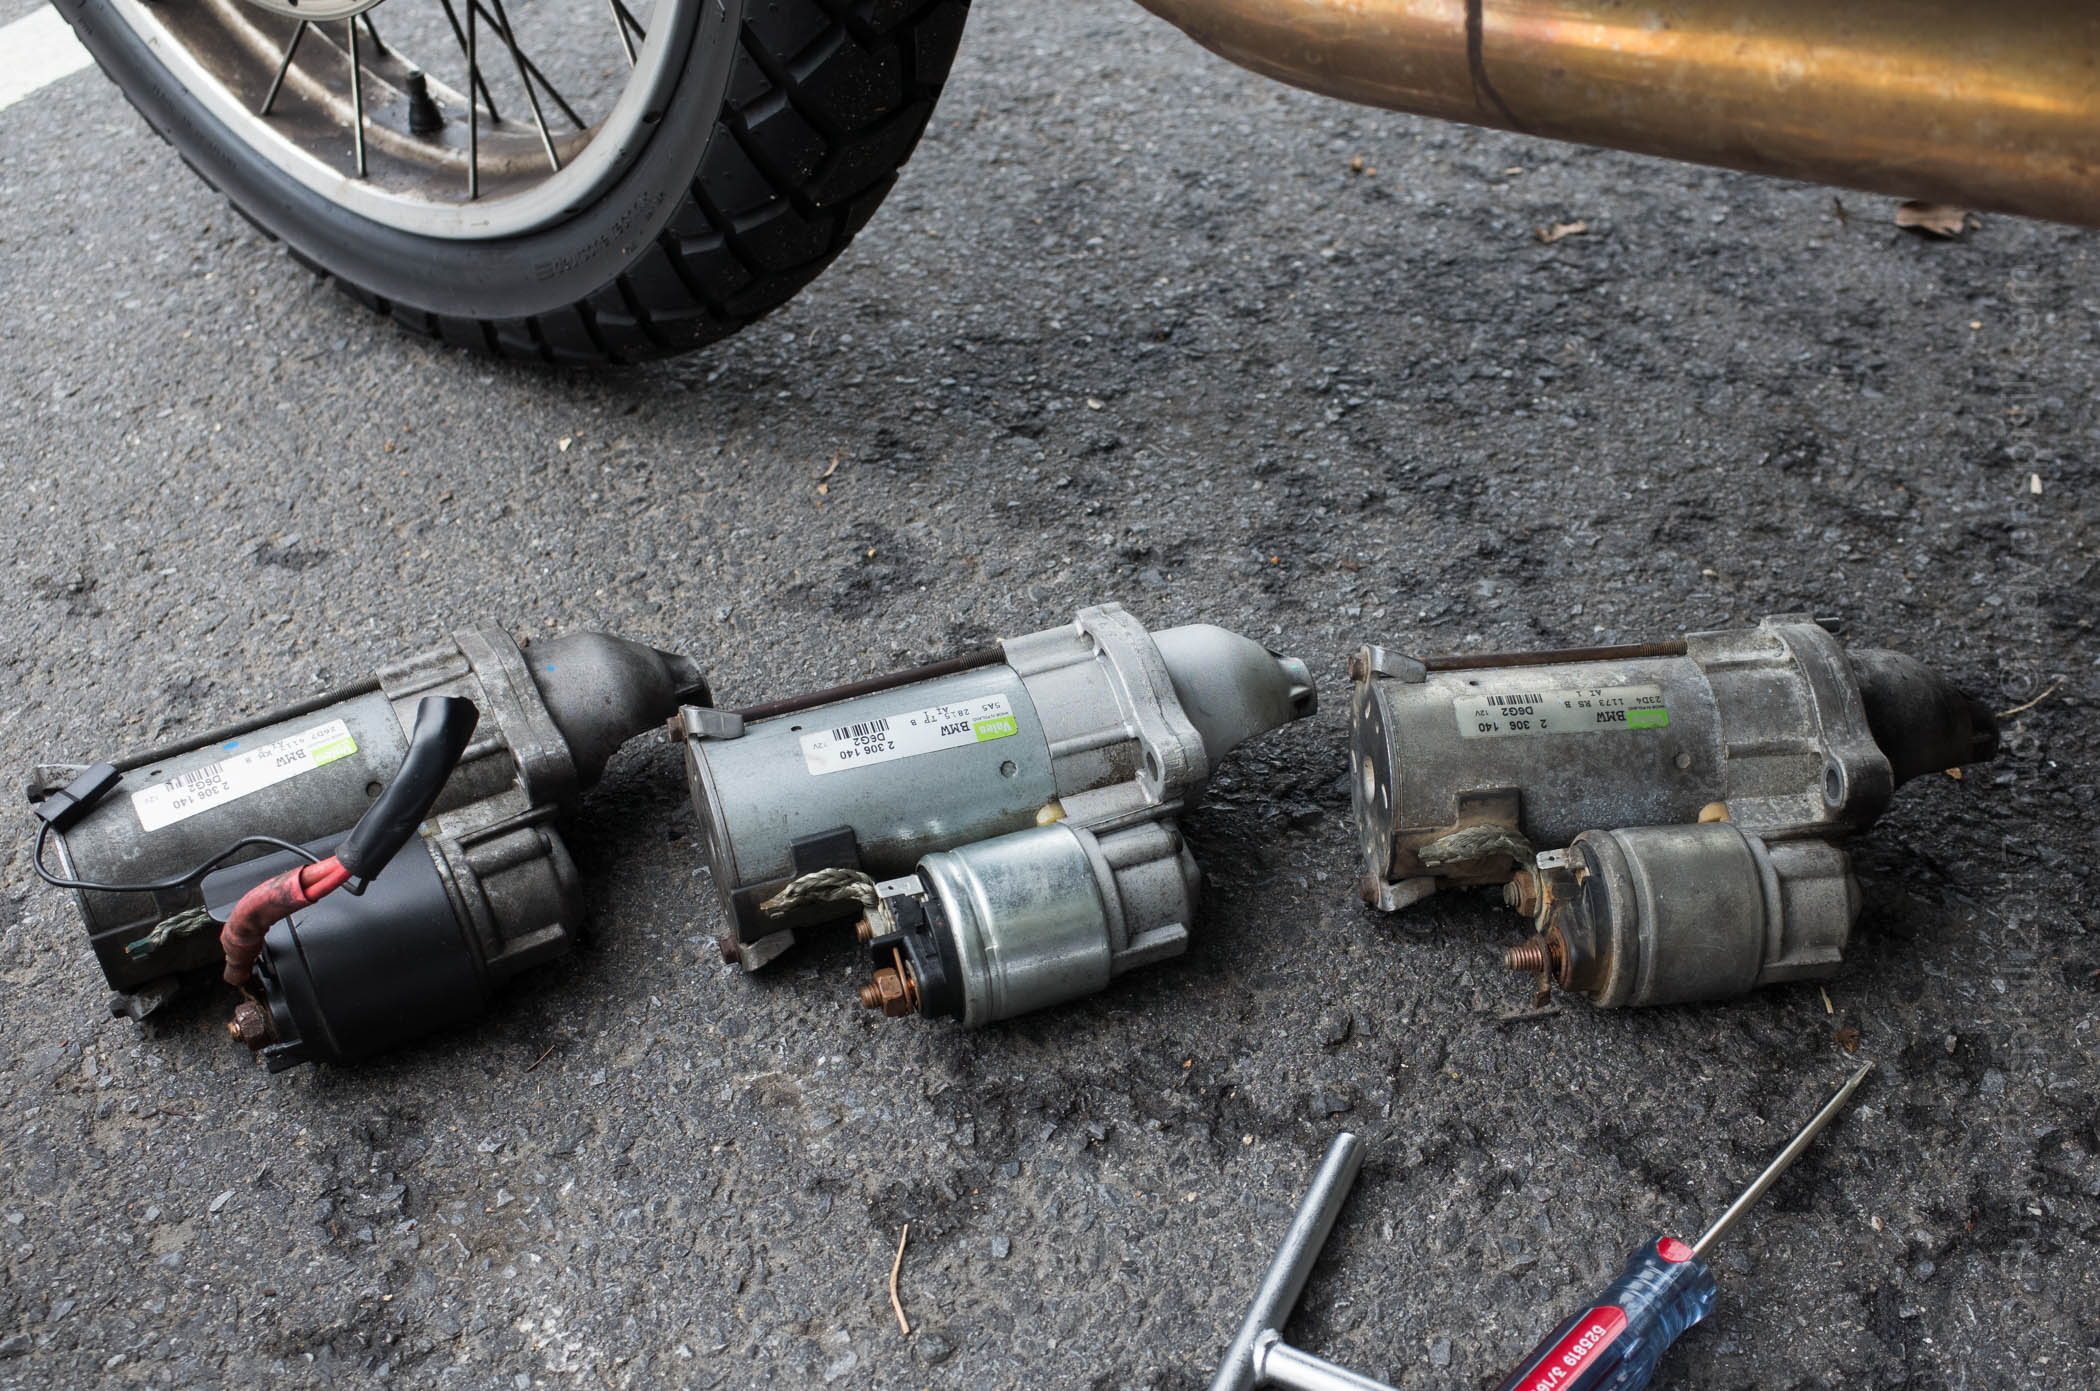 2005 BMW R1200GS Starter Motor Comparison. On the left is the Rev It Red used motor, the middle is the beautiful motowarrior replacement, and on the right is the dying one from my bike.